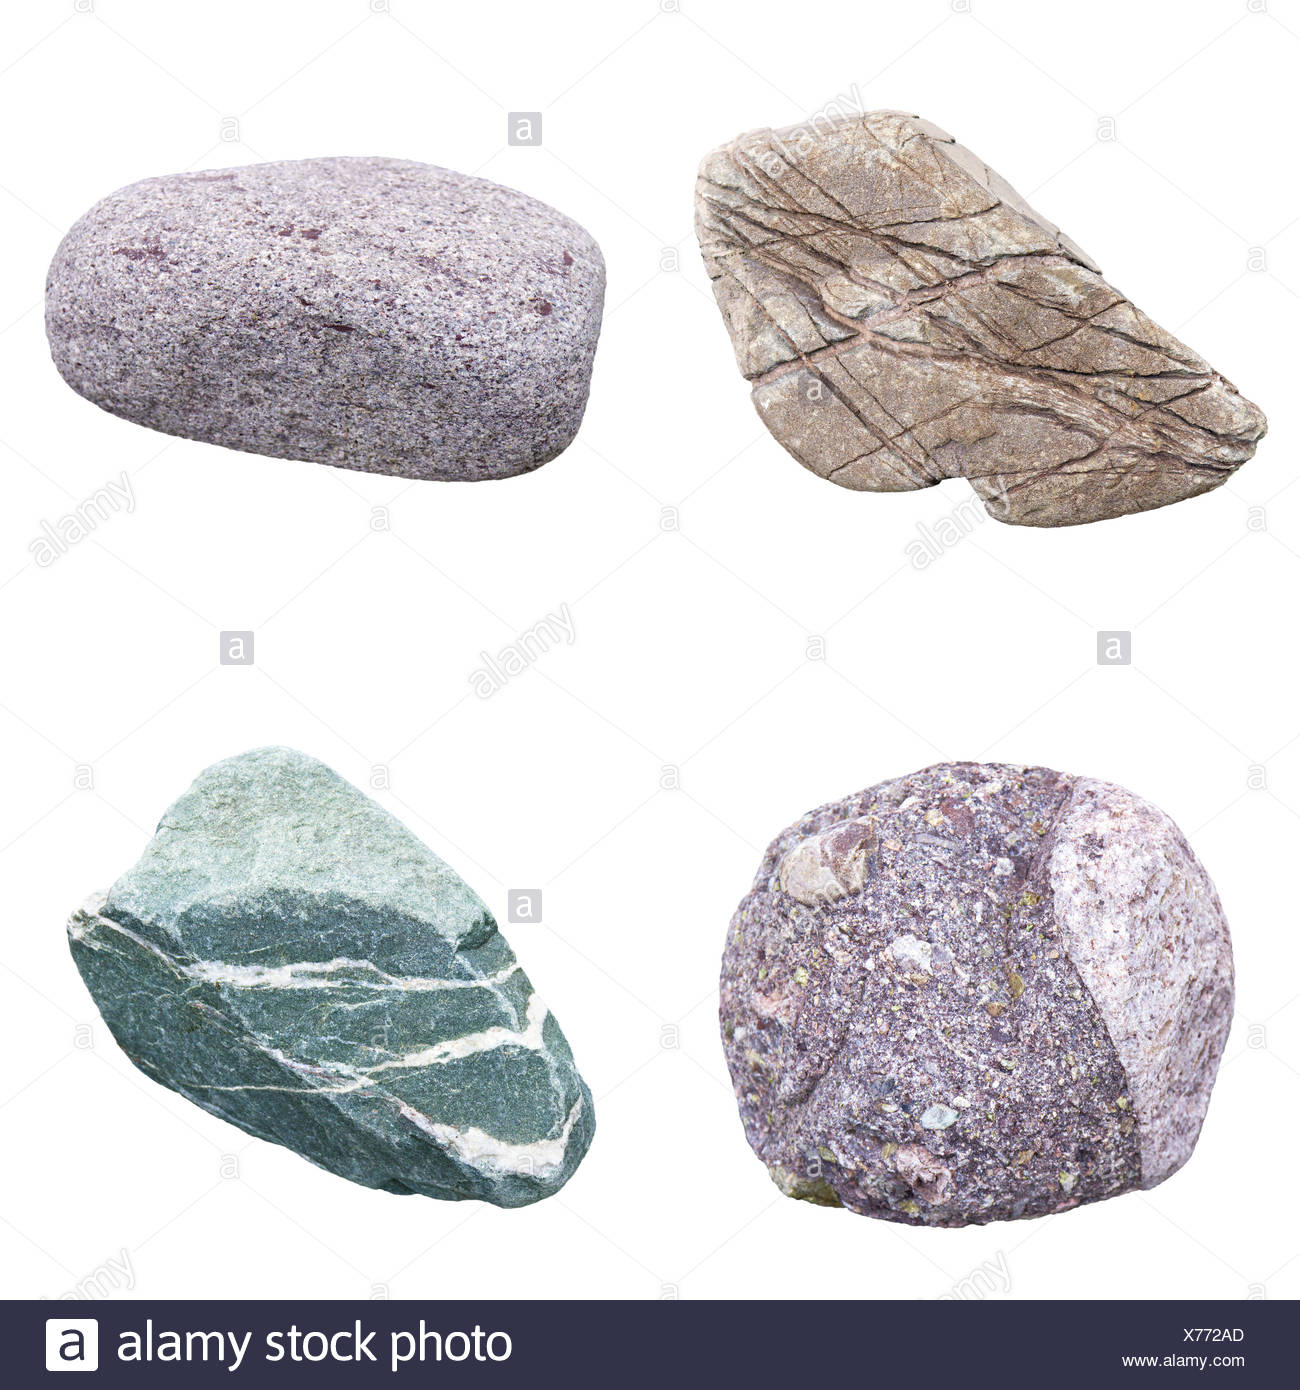 set of four minerals on a white background - Stock Image